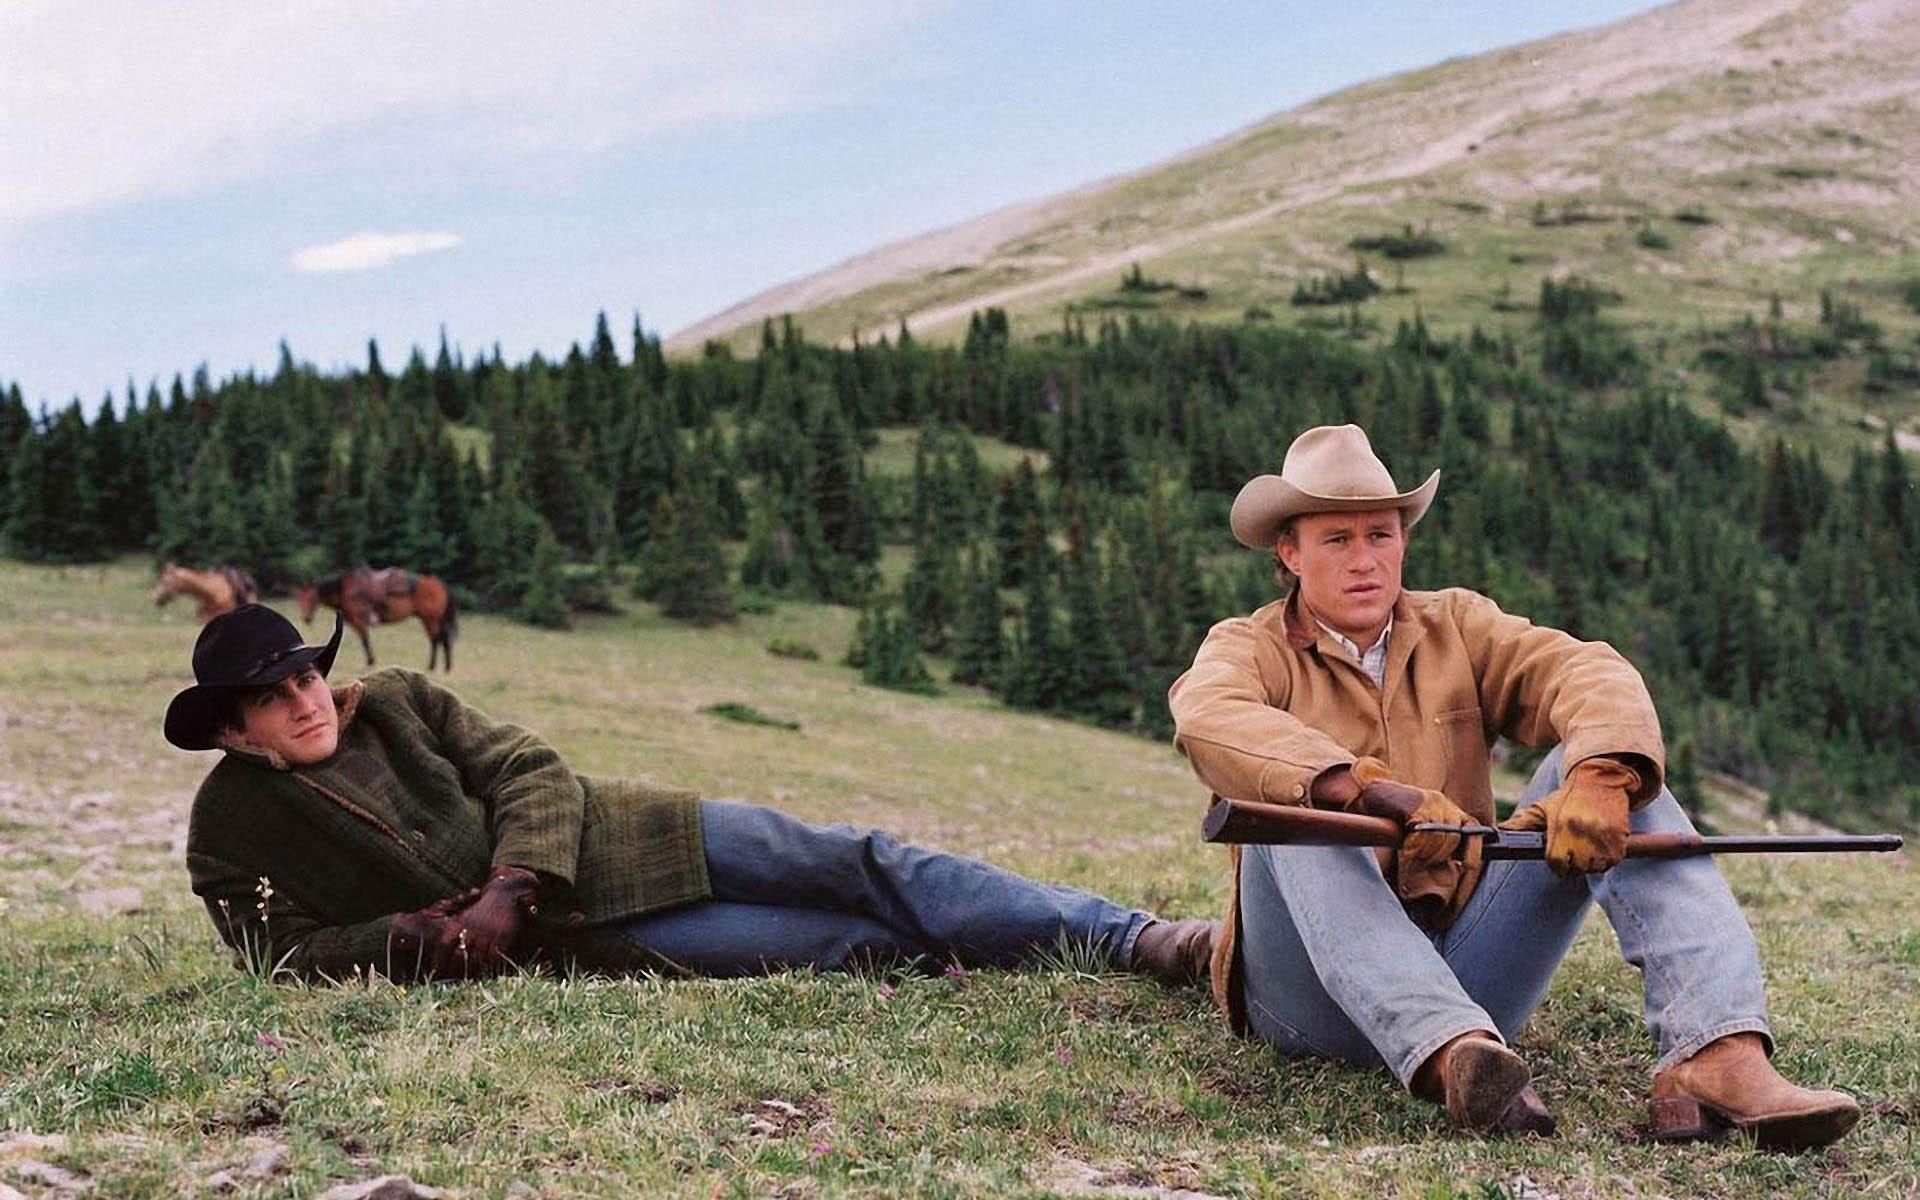 brokeback mountain essay yappa ding ding brokeback mountain an interpretive essay